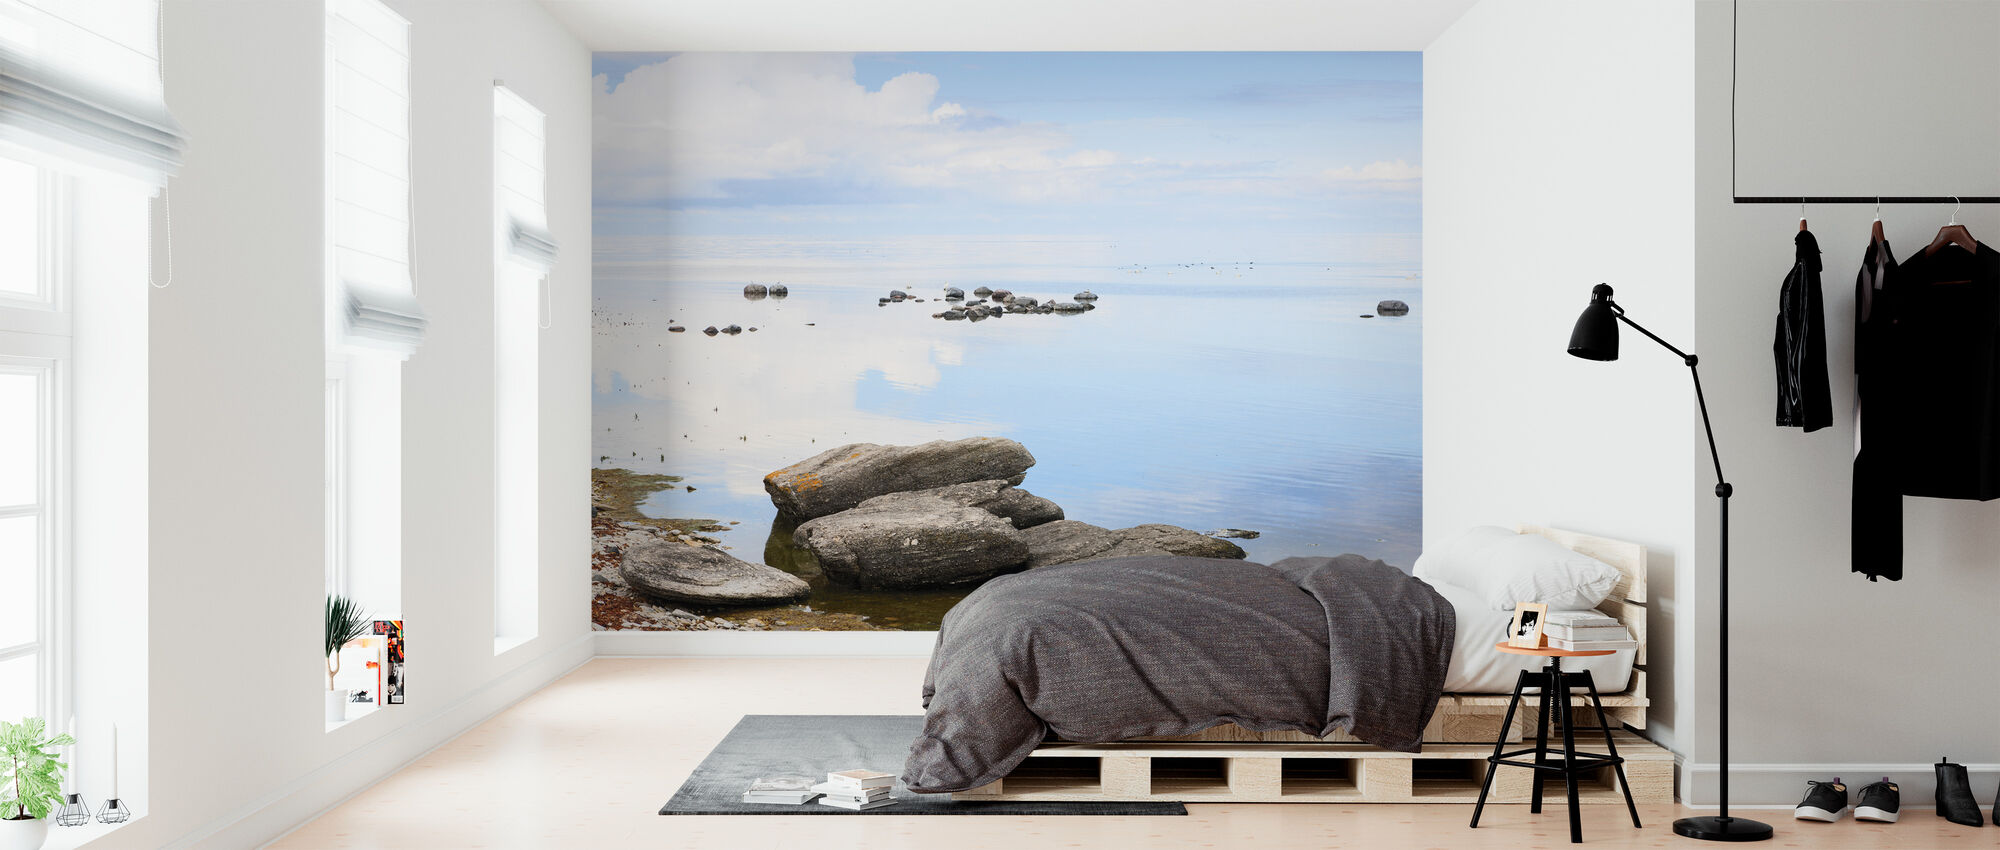 Sunny day at the coast of Gotland - Wallpaper - Bedroom